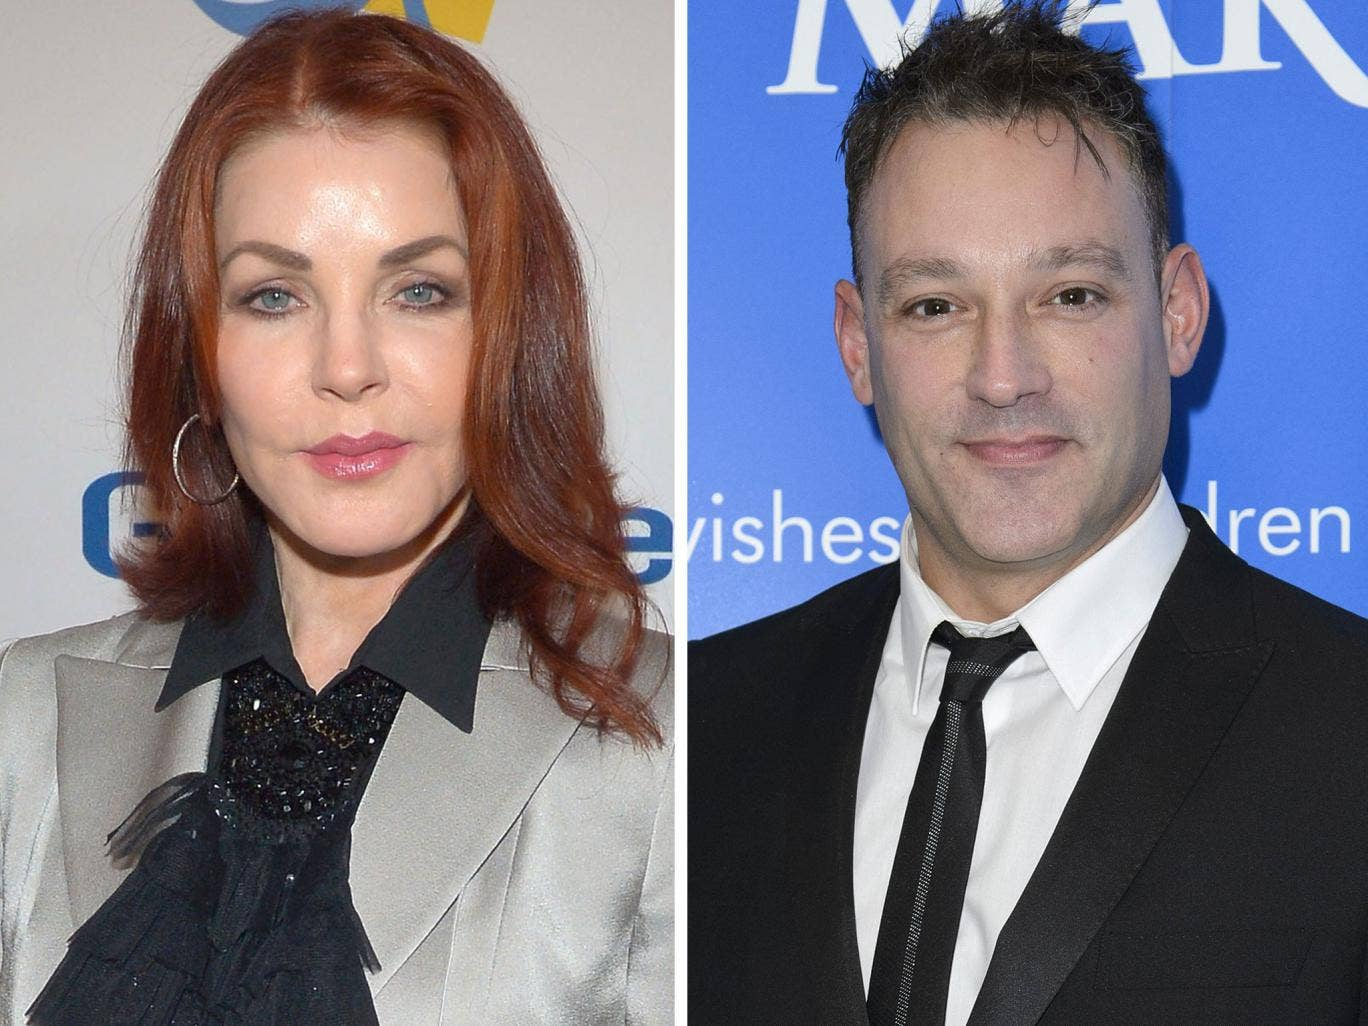 Representatives of both Priscilla Presley and television presenter Toby Anstis were forced to deny that the two were loving each other, tenderly or otherwise